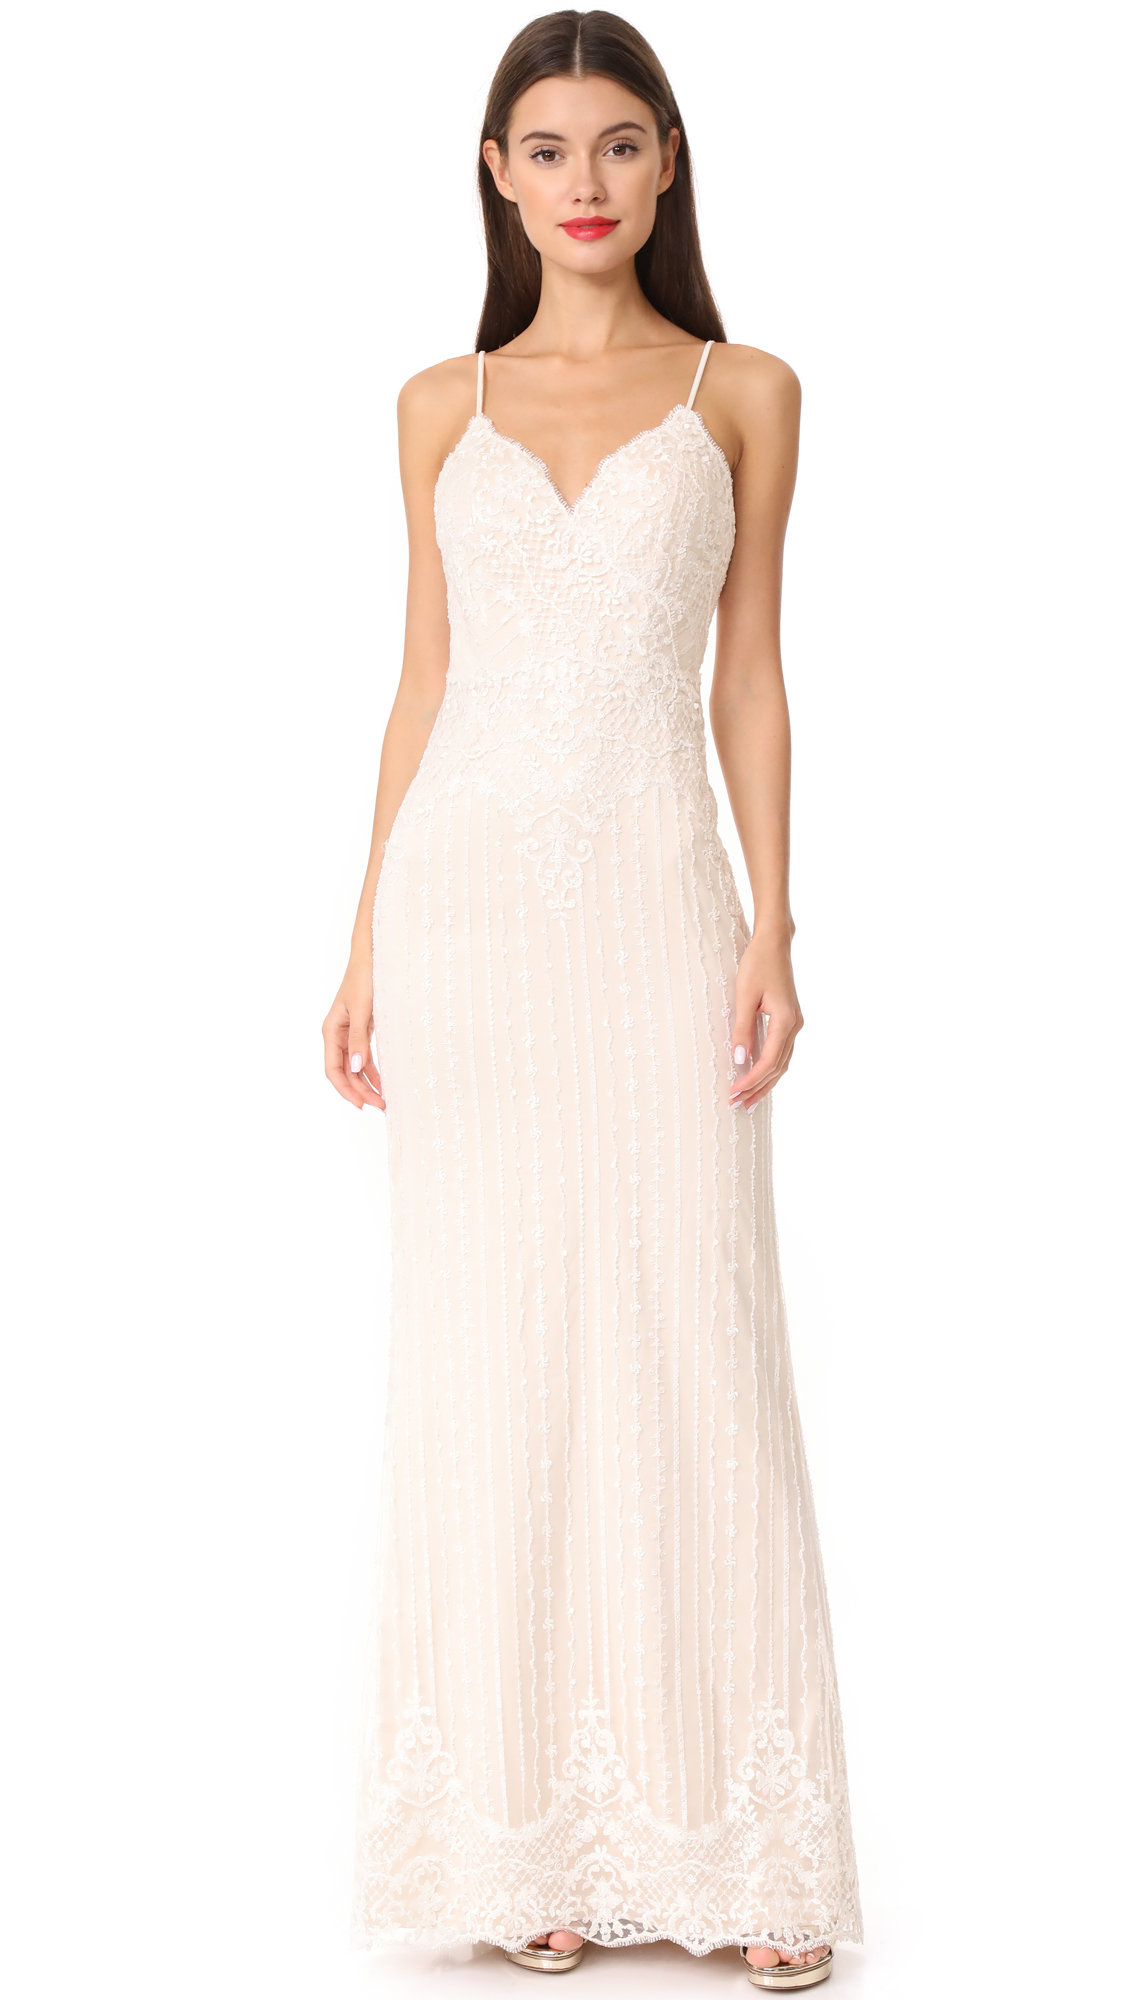 Catherine Deane Janie Gown - Ivory/Champagne